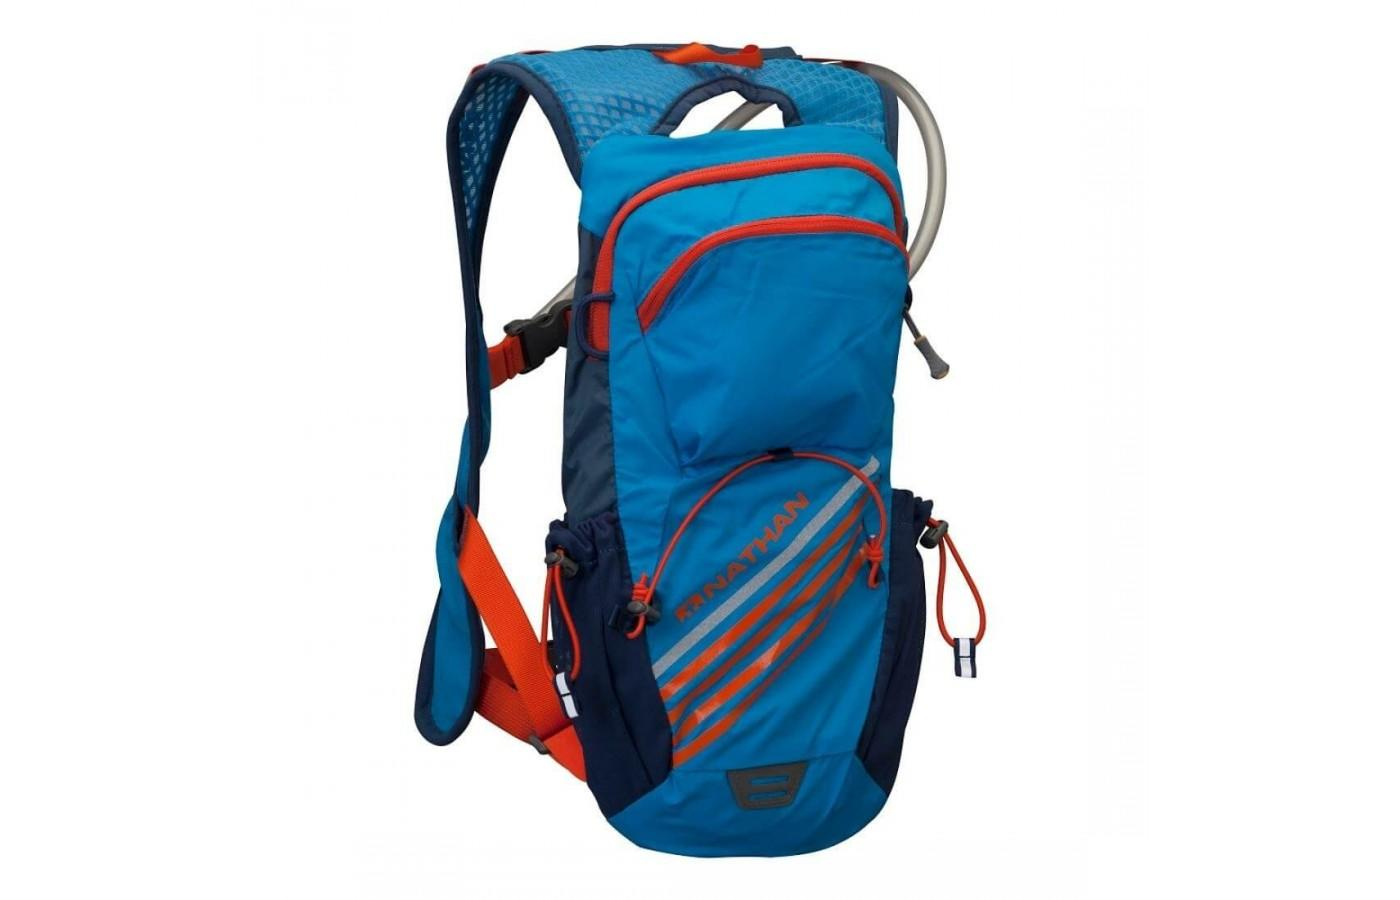 Nathan's Firestorm Hydration Vest is sleek, lightweight vest for runners, hikers, or cyclists.